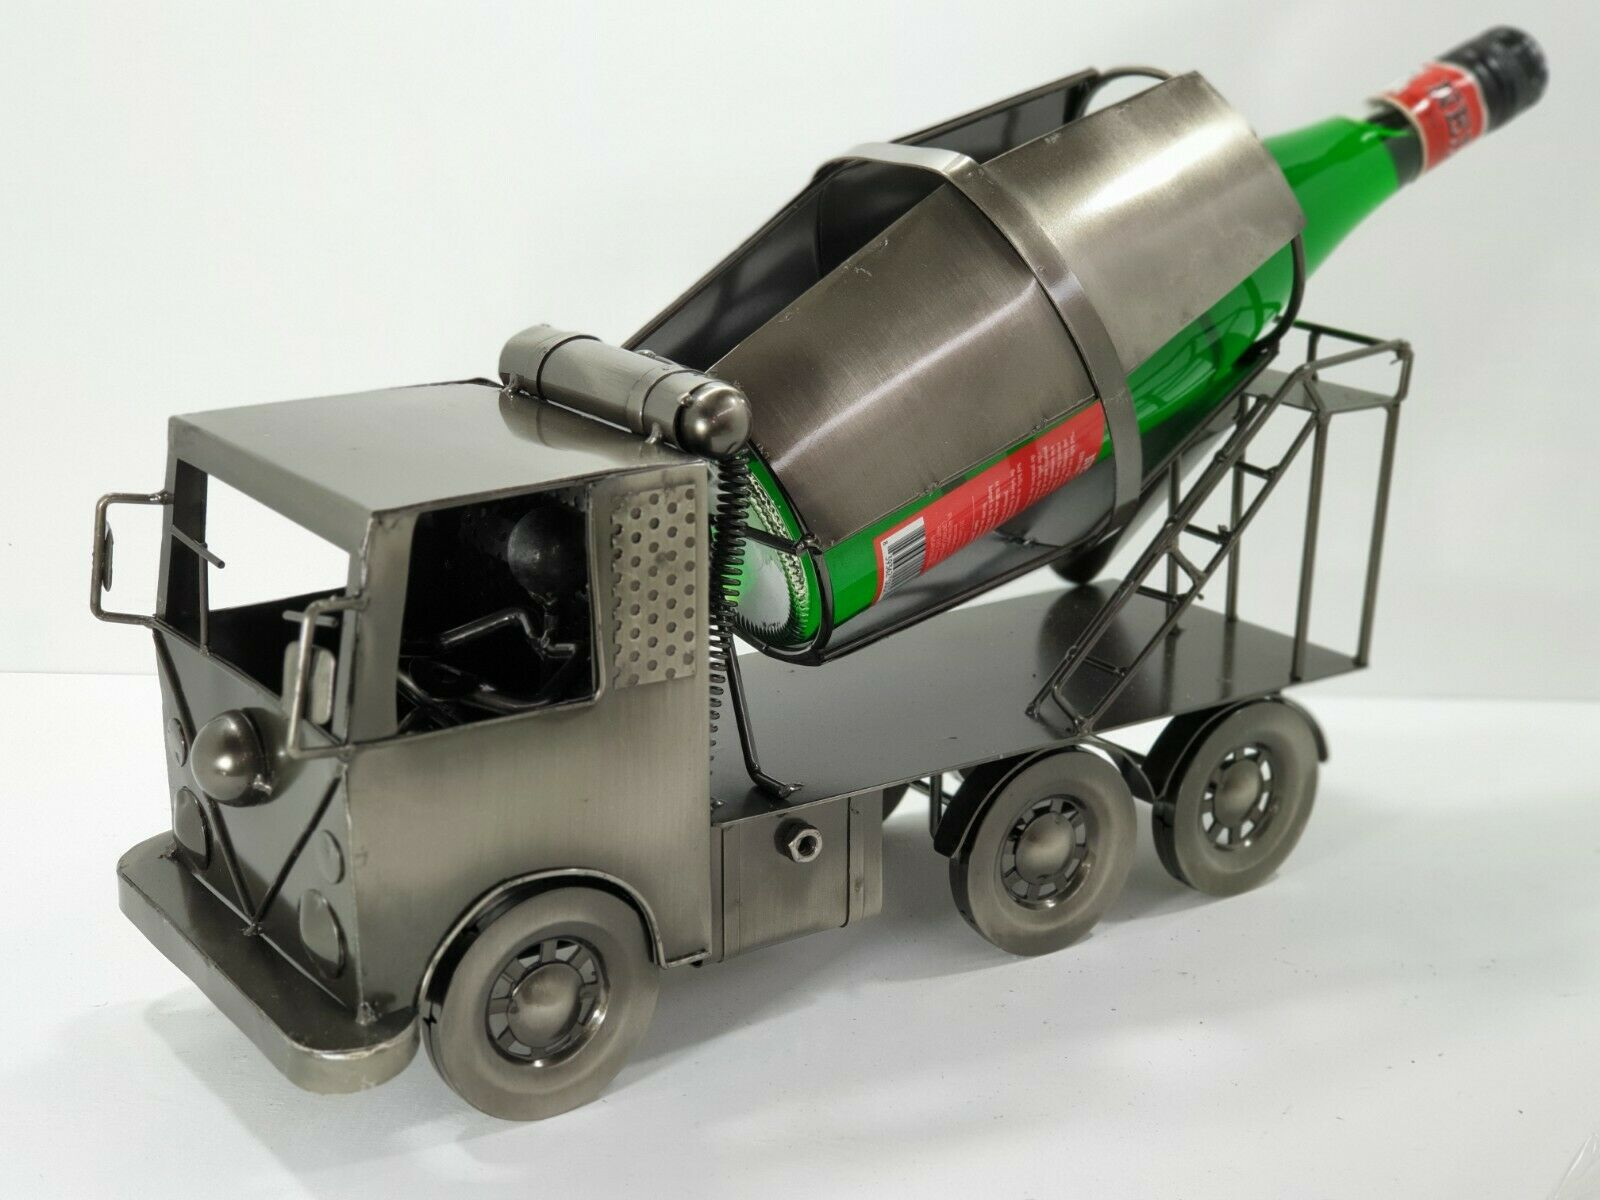 novelty gift wine bottle wine rack transport cement mixer truck man cave bar